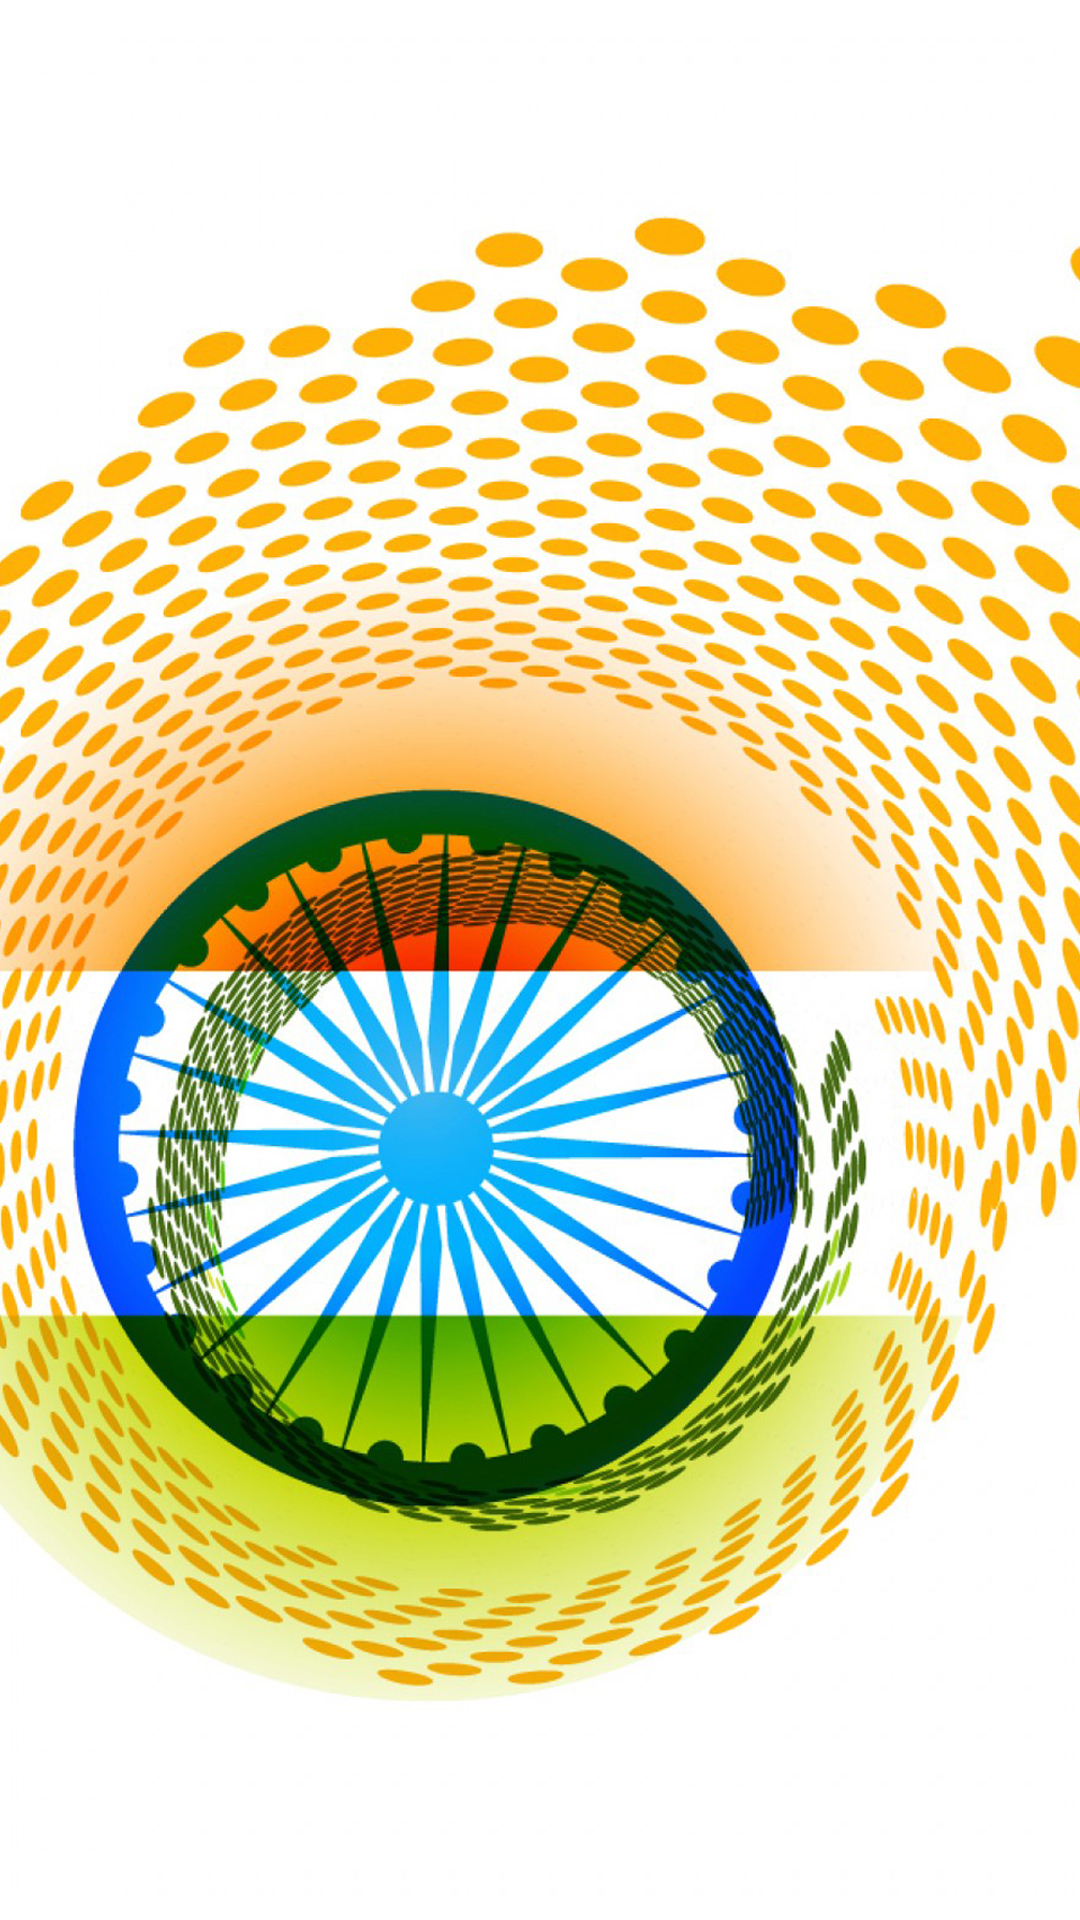 india flag for mobile phone wallpaper 04 of 17 – indian map and flag